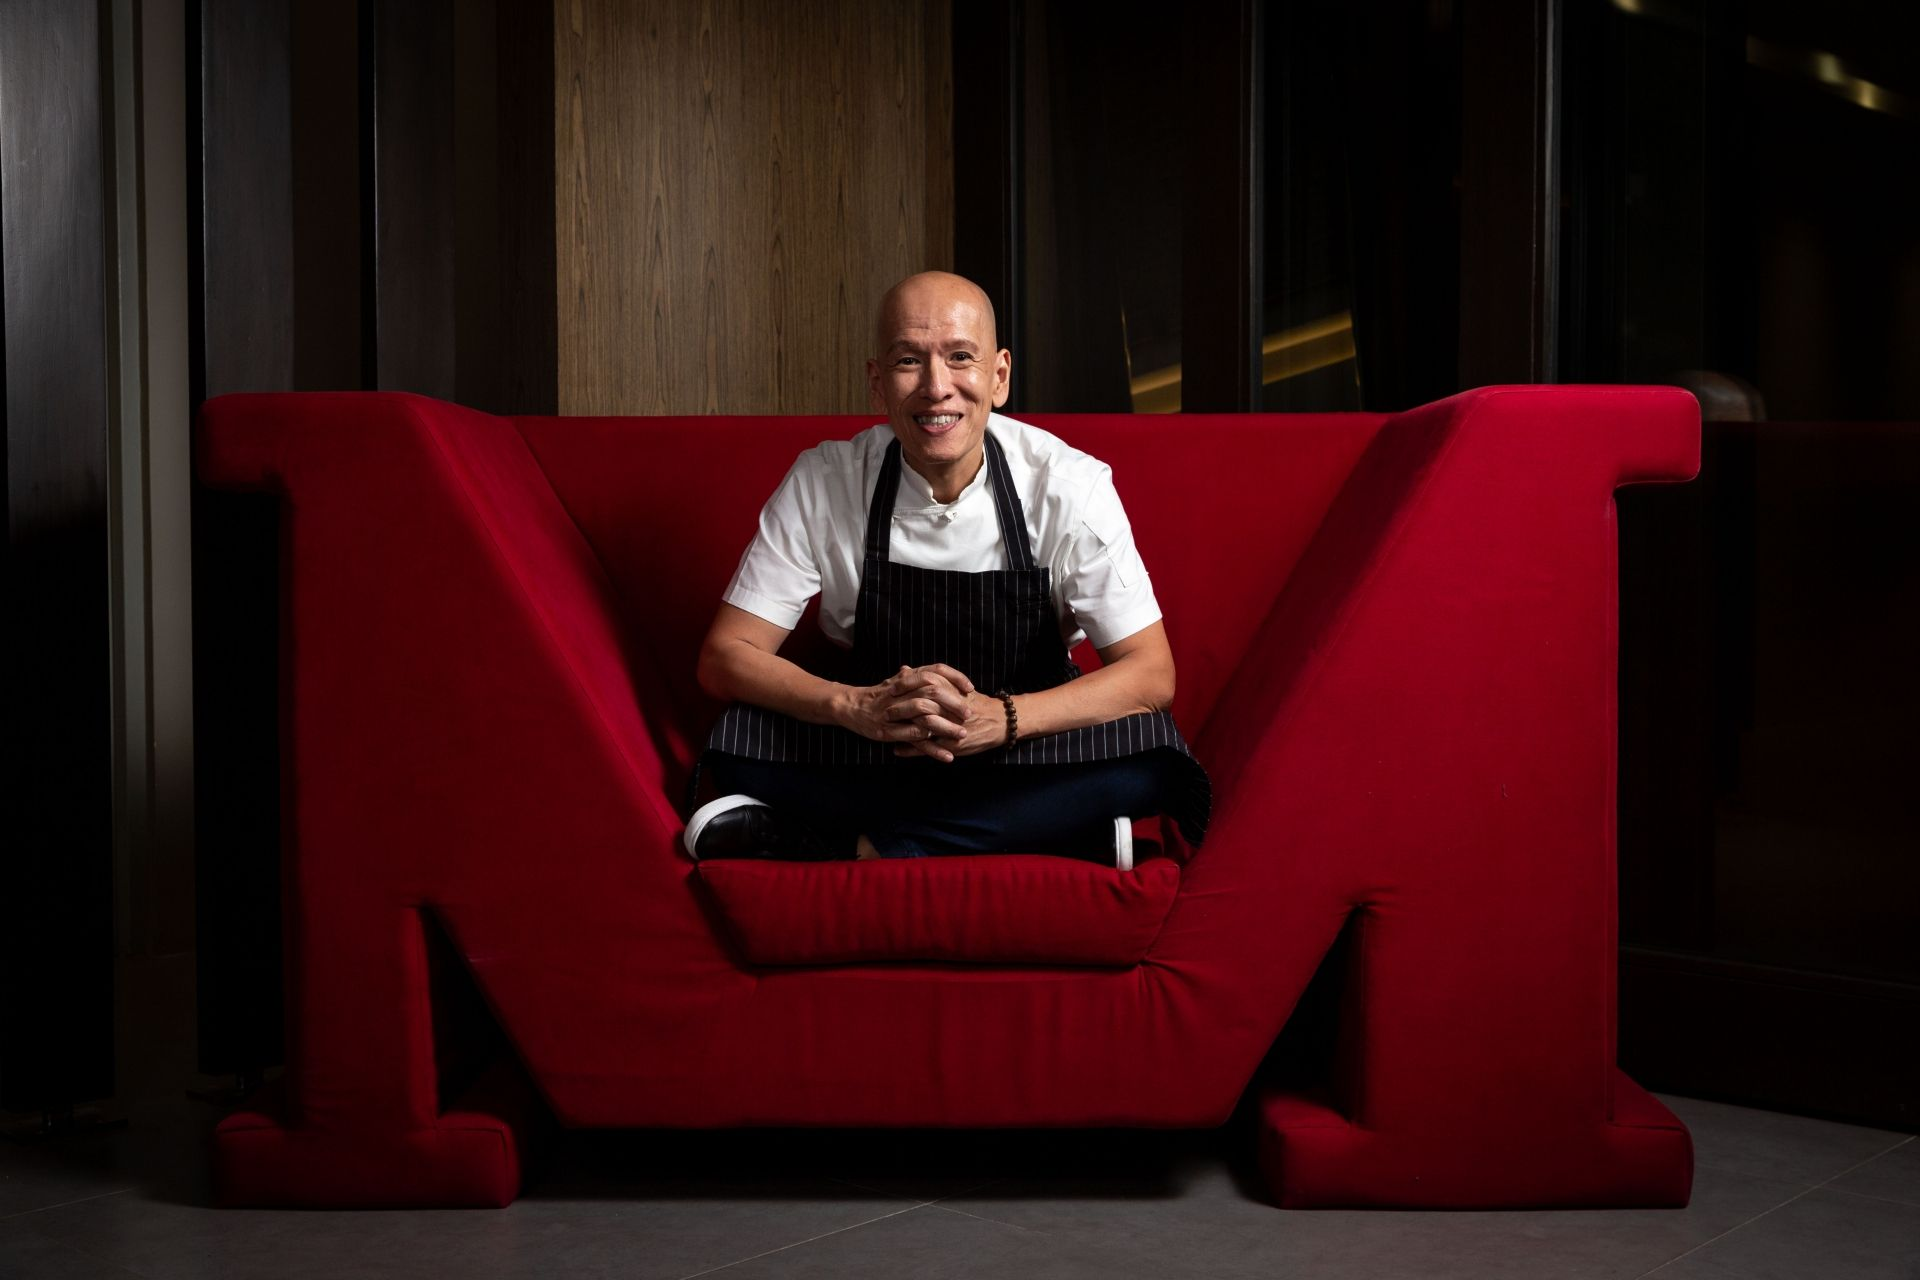 Chef Tom Bascon Of M Dining Talks About The Experiences That Shaped Him